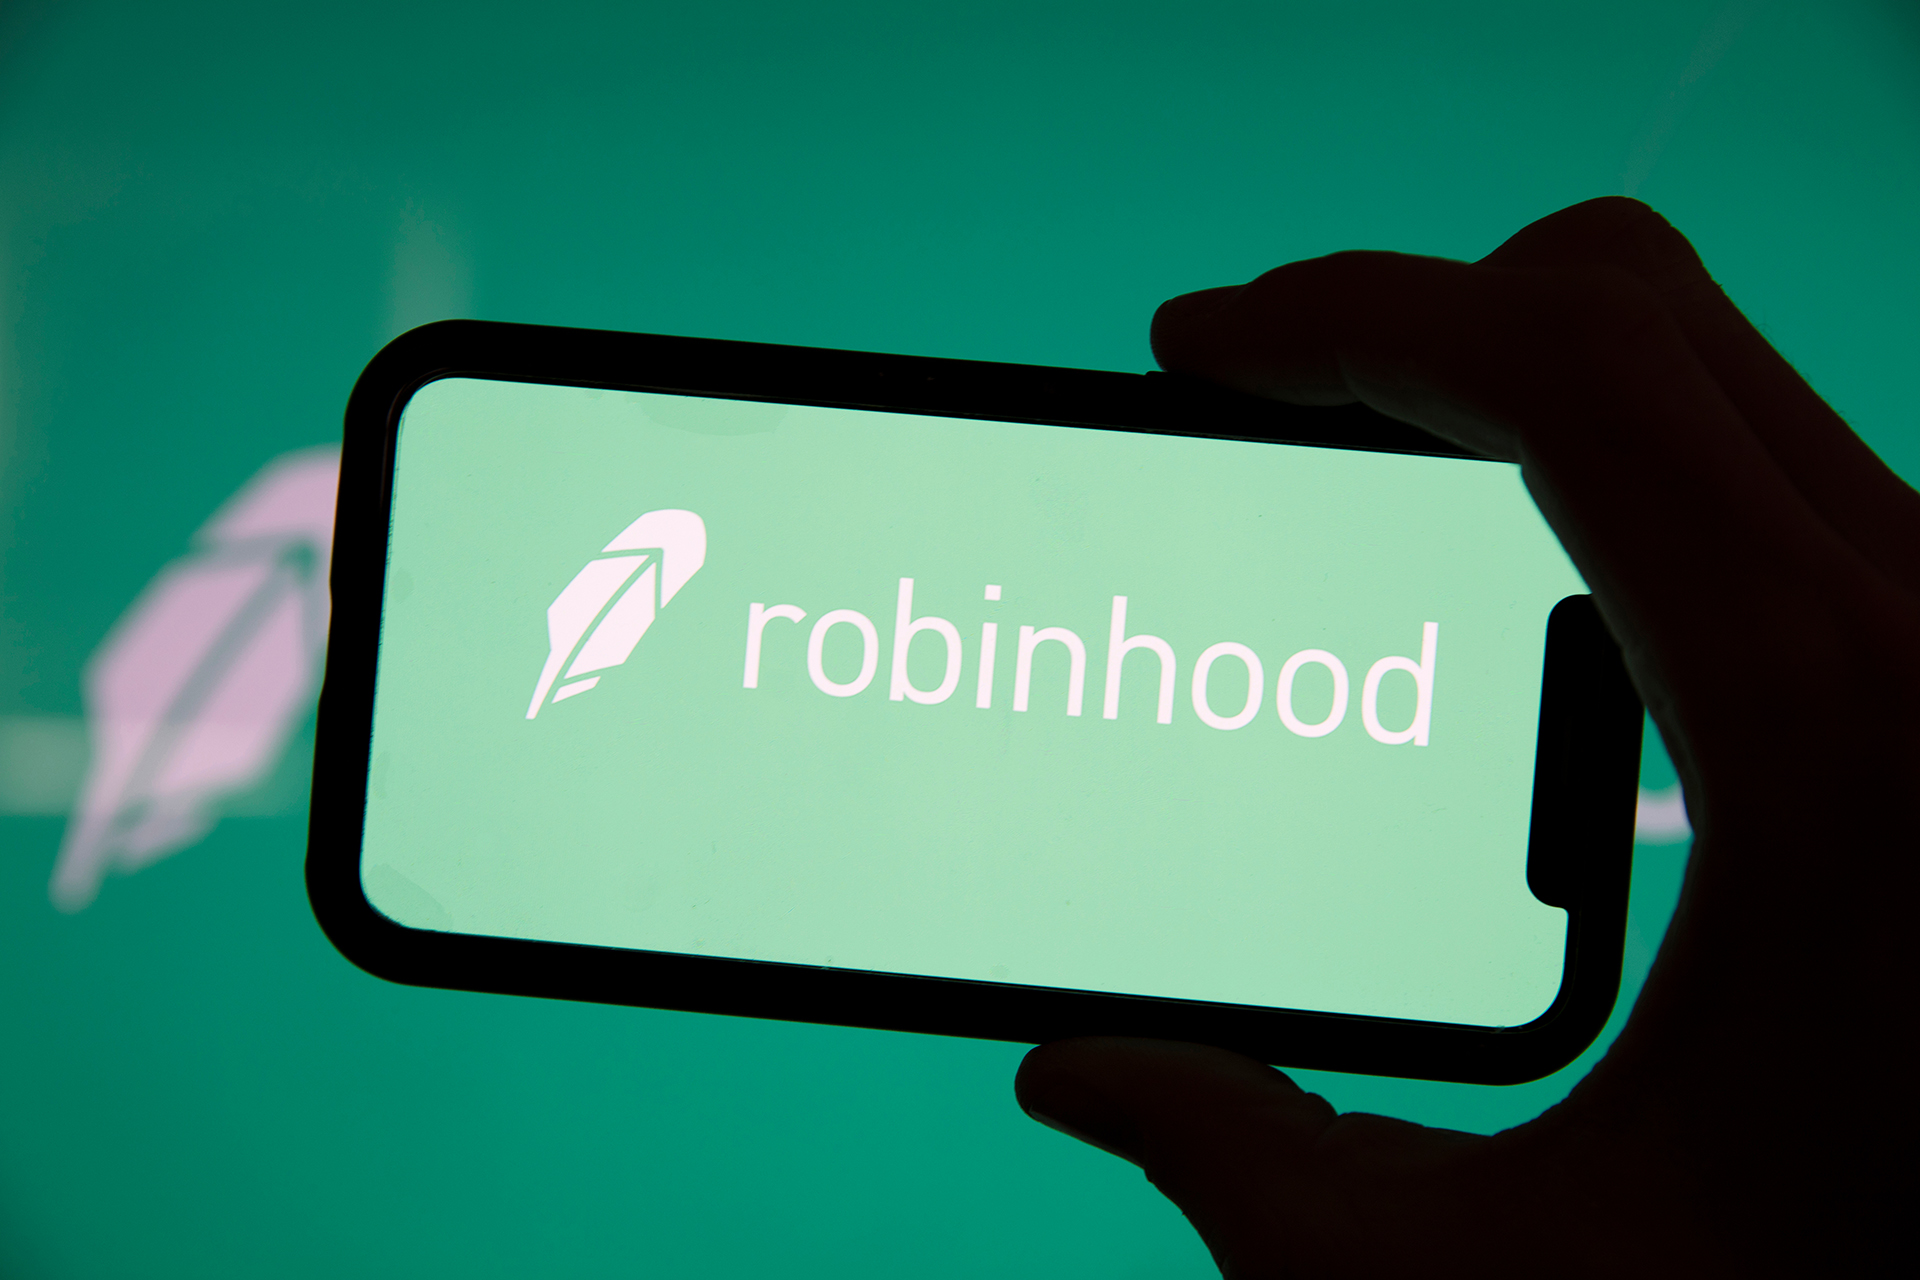 Robinhood was just the start as trading apps trade up